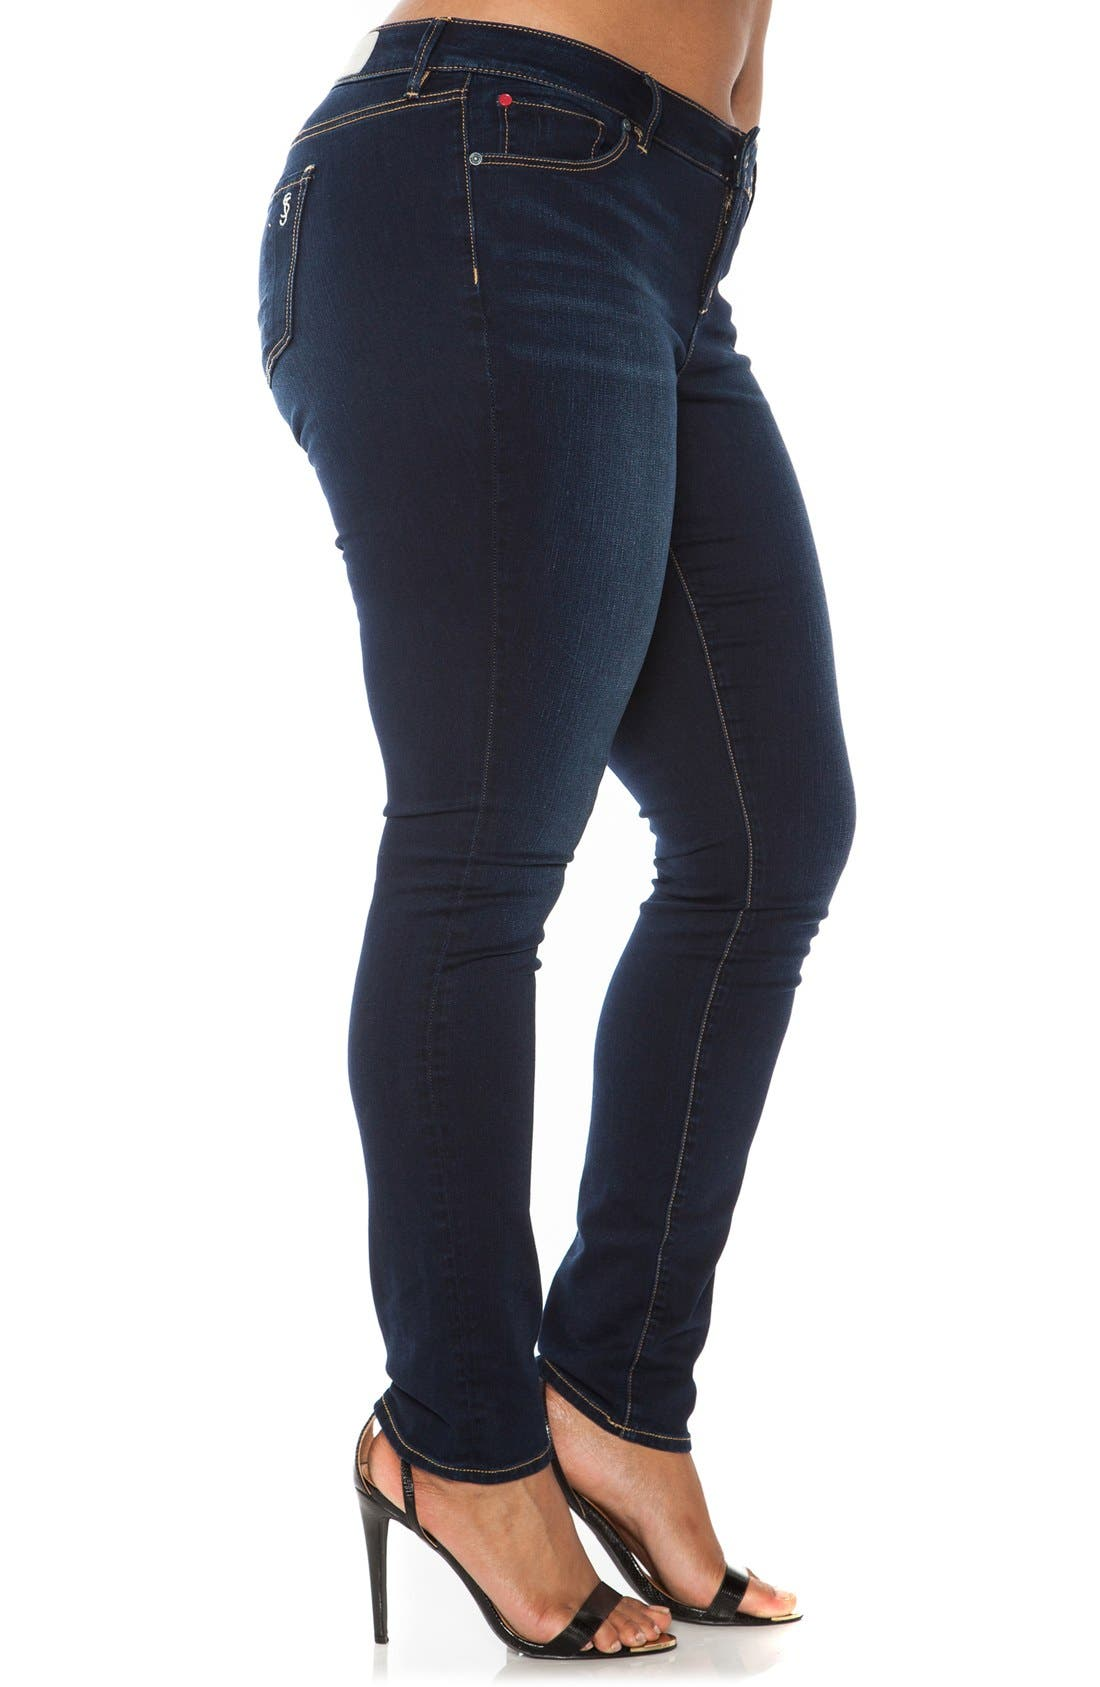 'The Skinny' Stretch Denim Jeans,                             Alternate thumbnail 8, color,                             AMBER